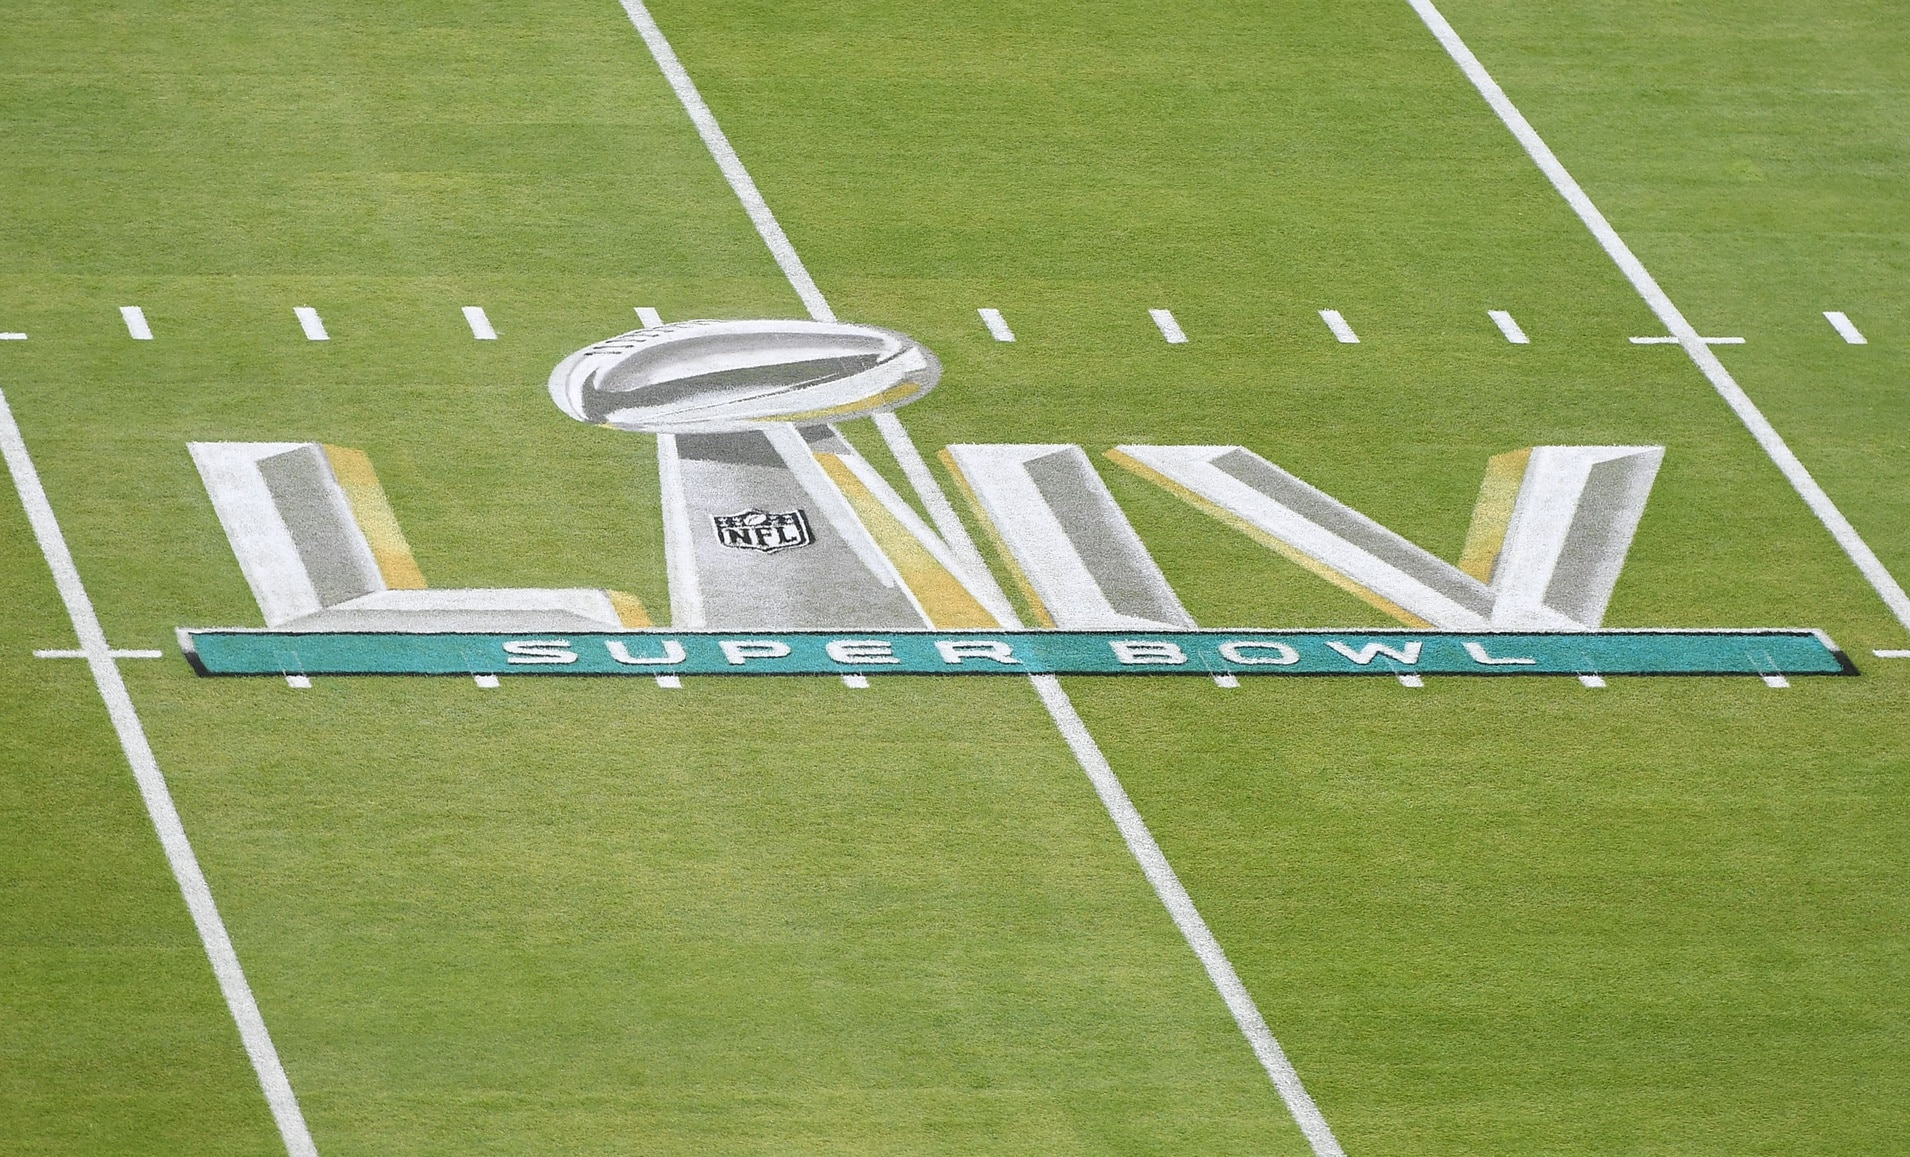 CBS-goes-big-with-NFL-Super-Bowl-online-streaming-plans